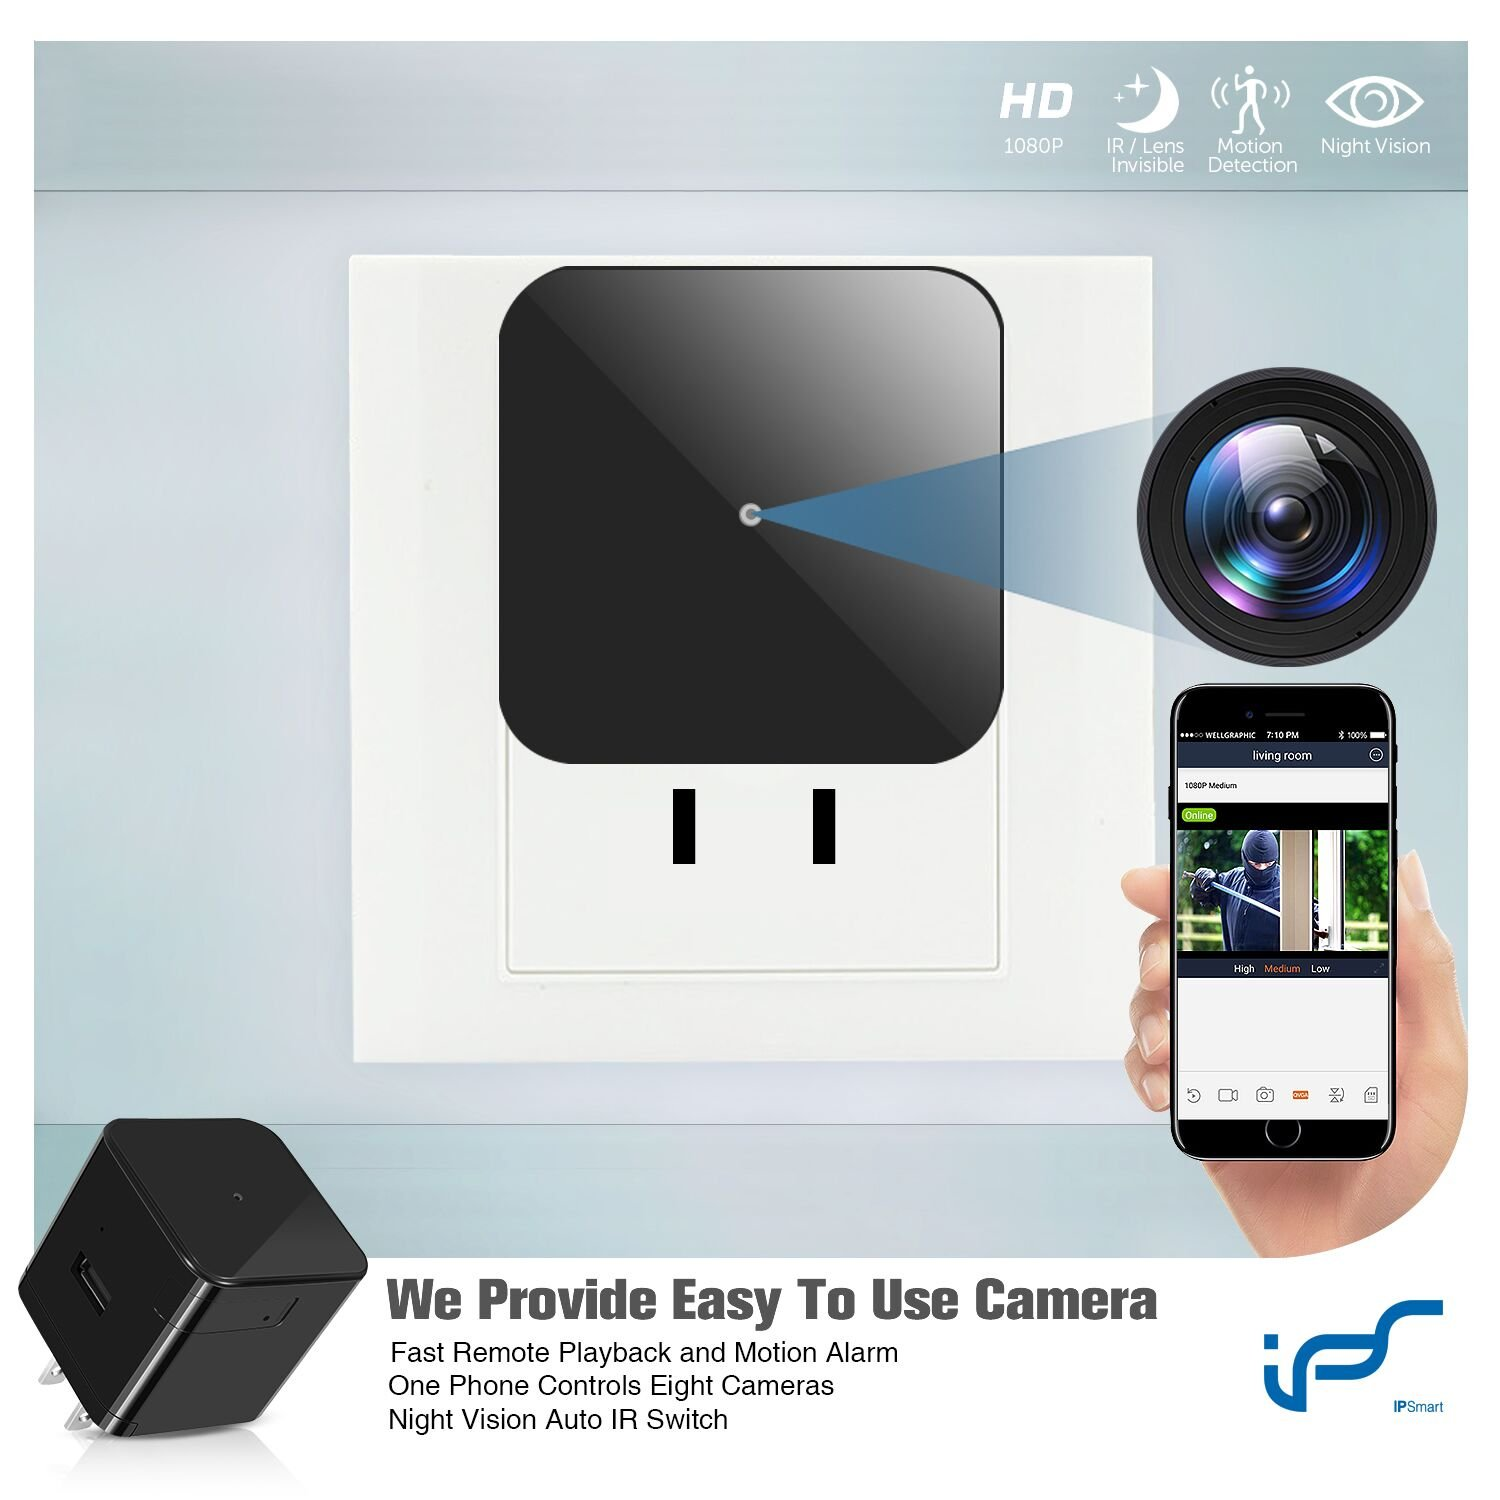 Hidden Camera WiFi Adapter 1080P Spy Camera Wall Charger with Night Vision Spy USB Camera Mini with Motion Detection Plug Camera Hidden Wireless with Playback - Real Time Home or Office Surveillance